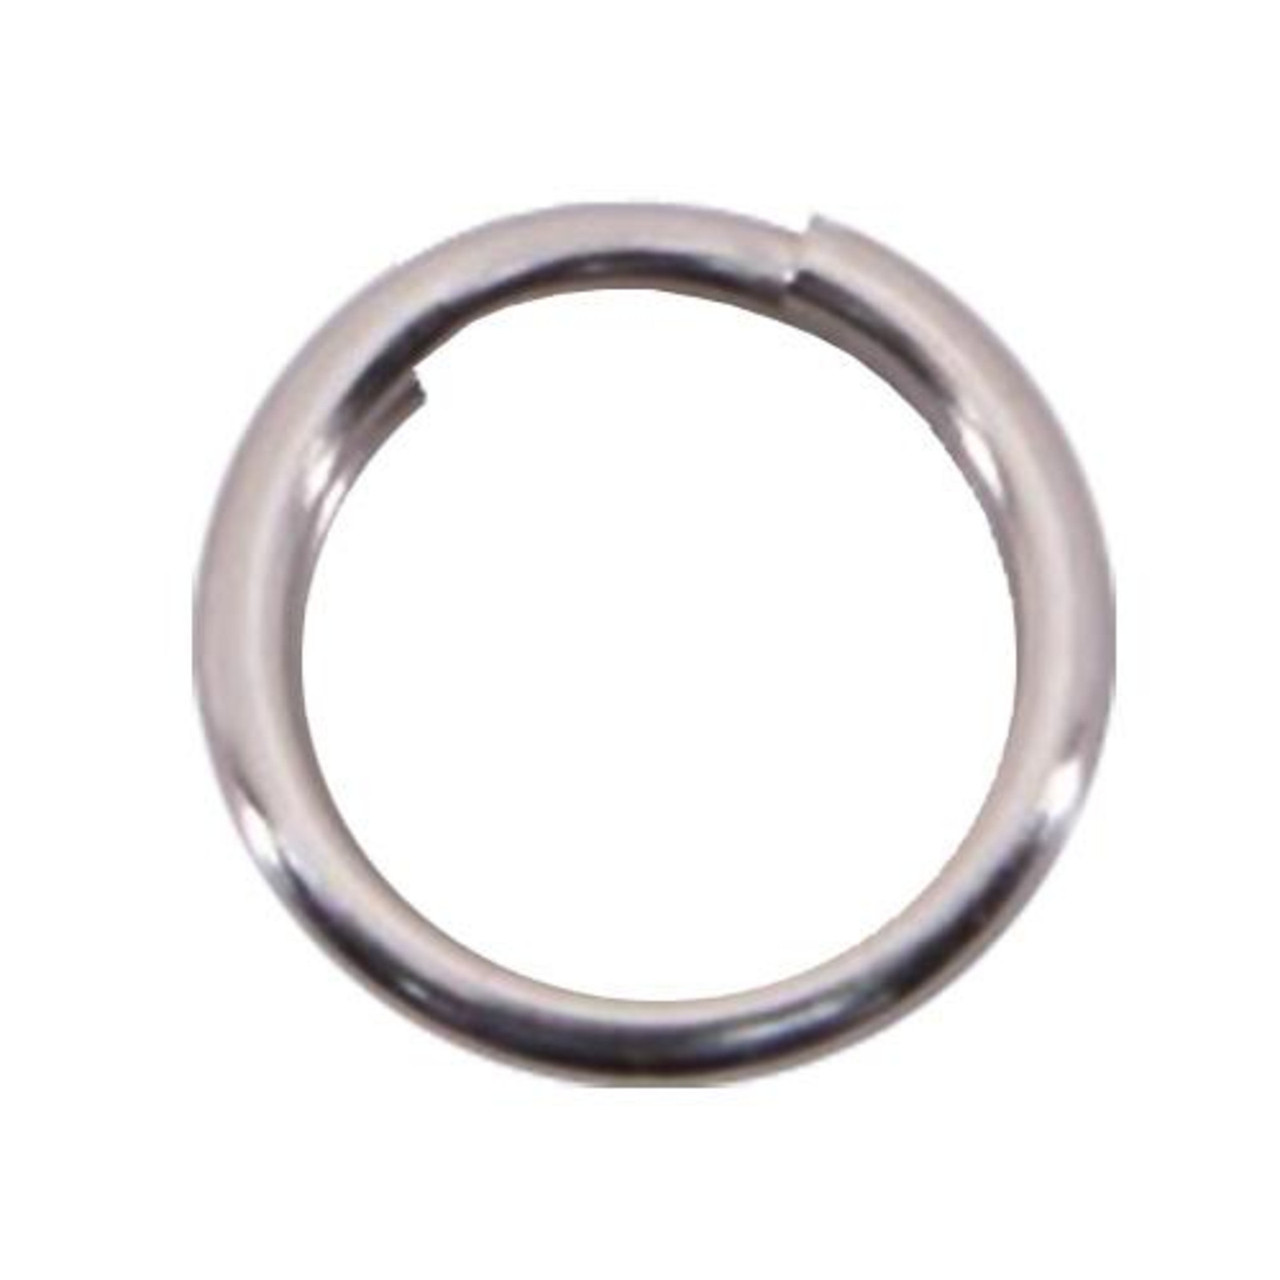 Spro Sports Professionals Stainless Steel Split Rings SSTLSRN CHOOSE YOUR SIZE!